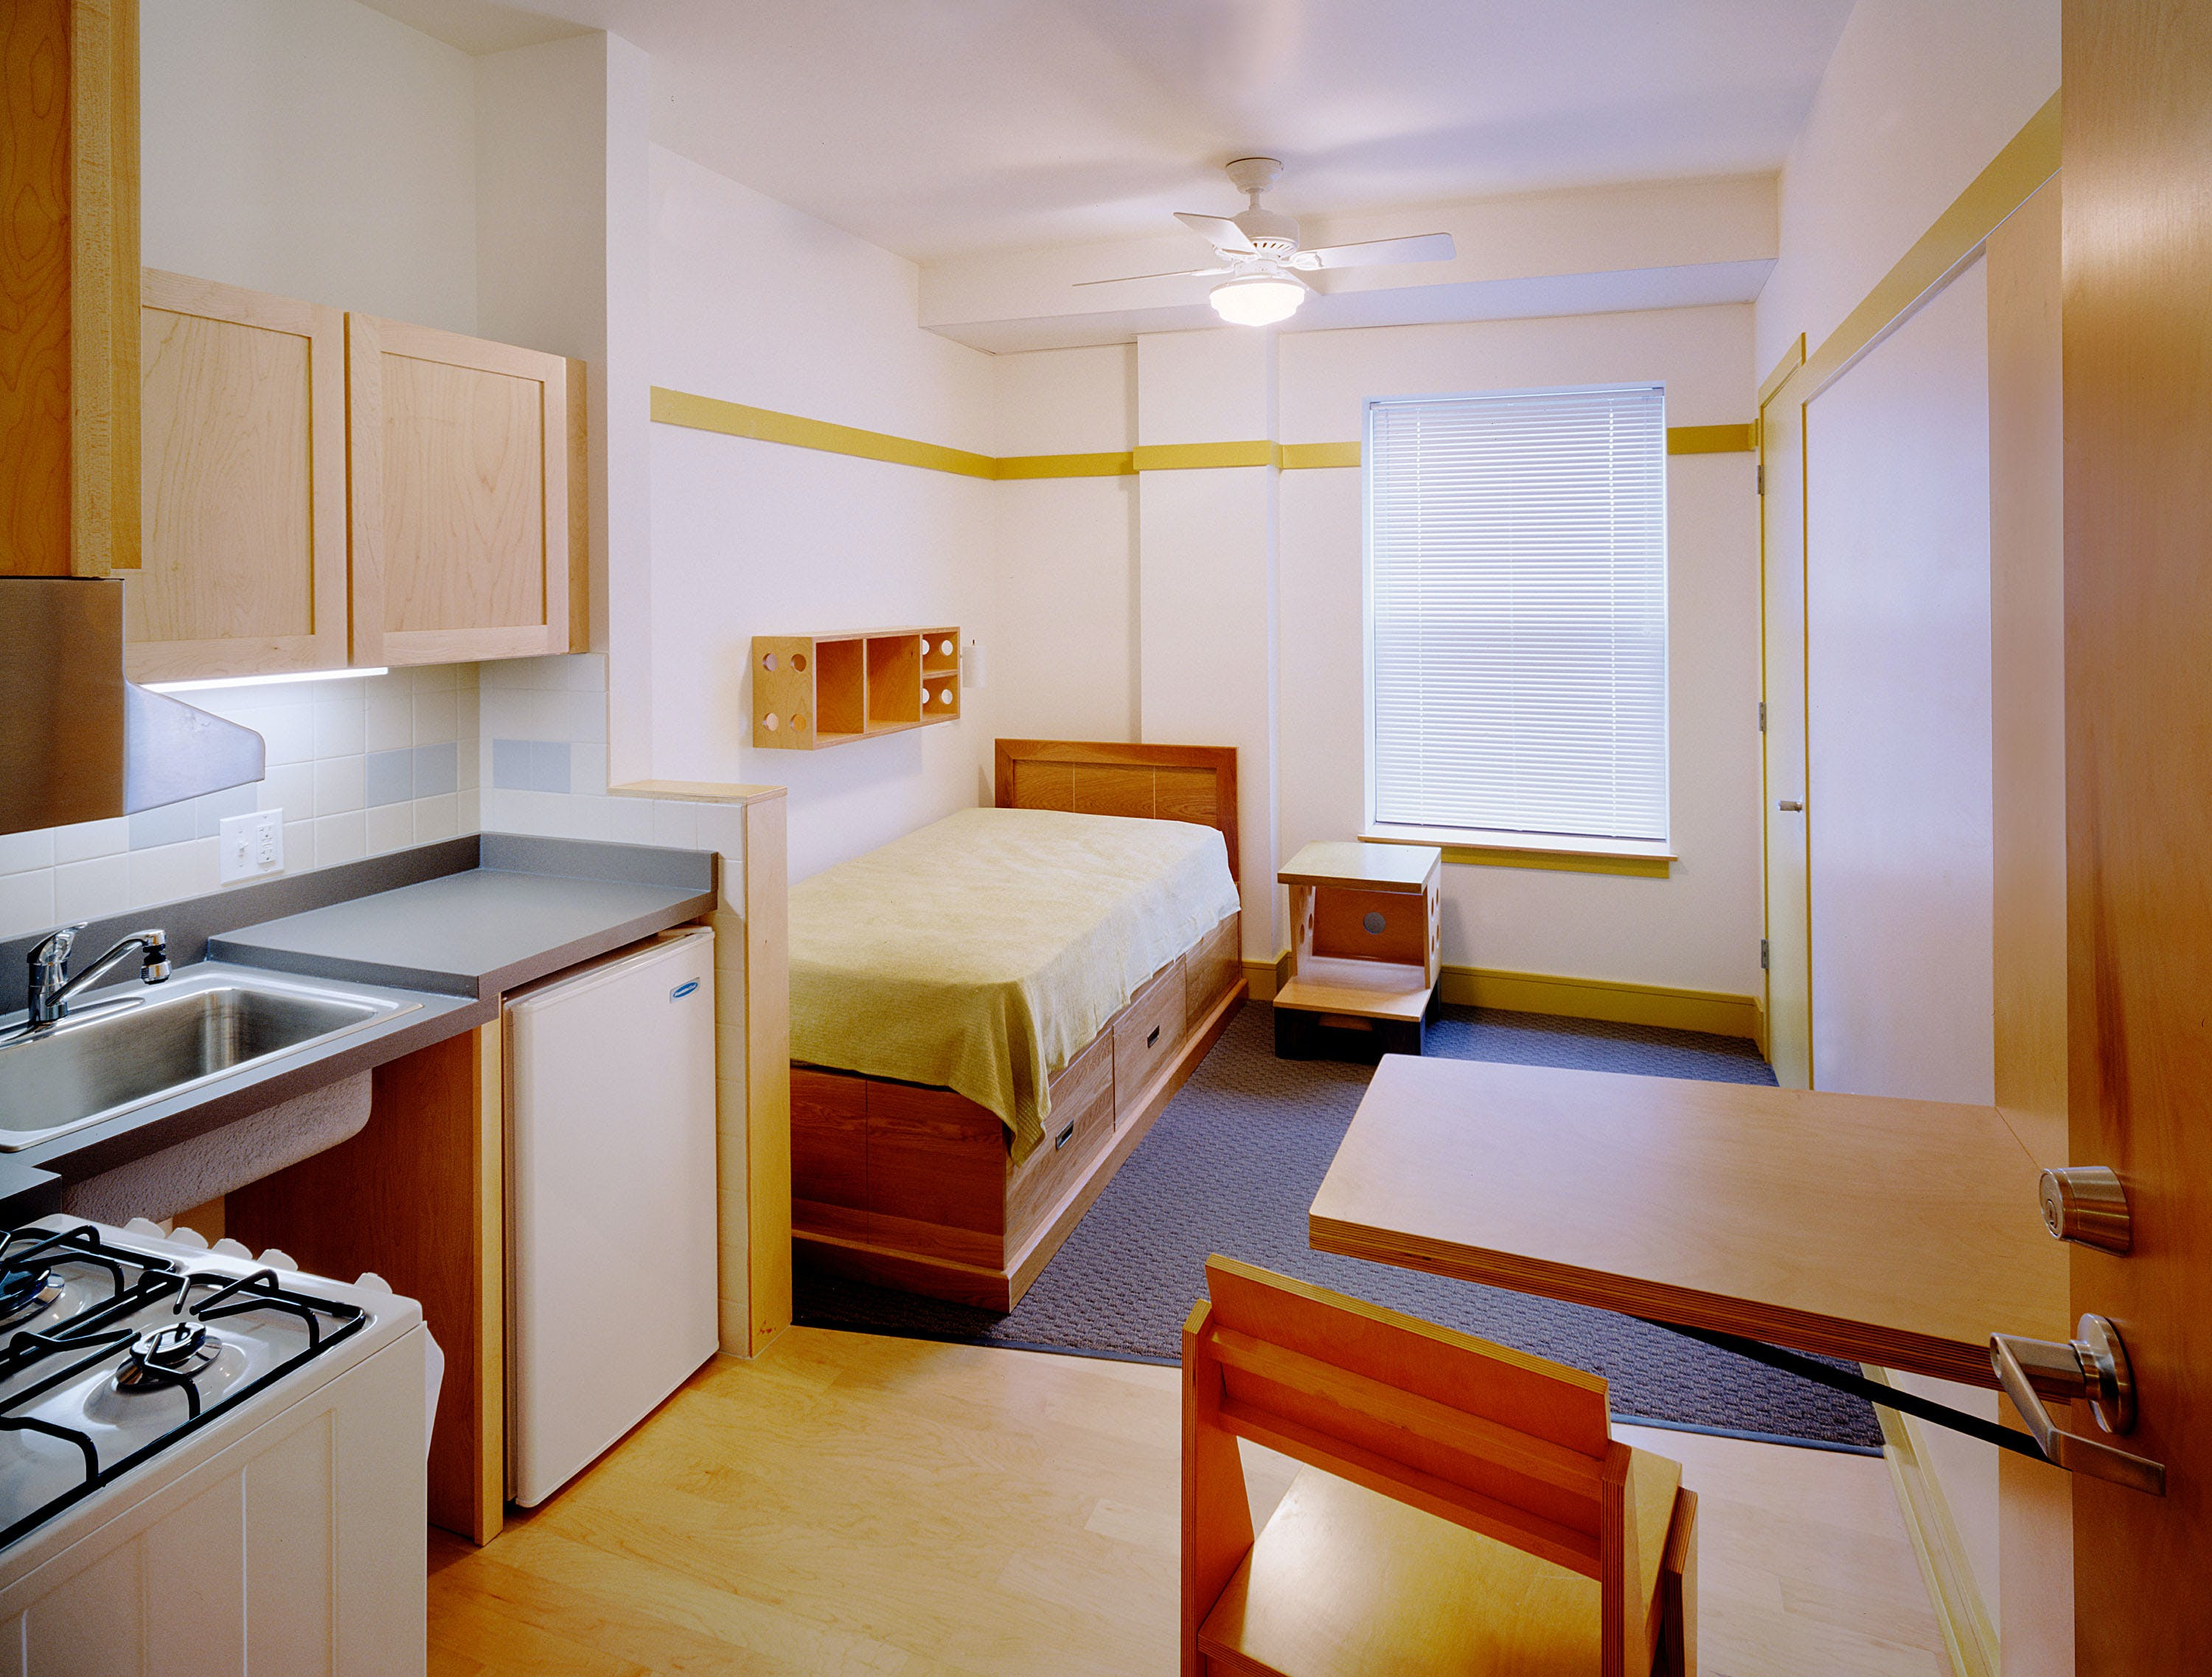 Shared Kitchen/Bathroom Apartments in Multi-family Zones Example 1